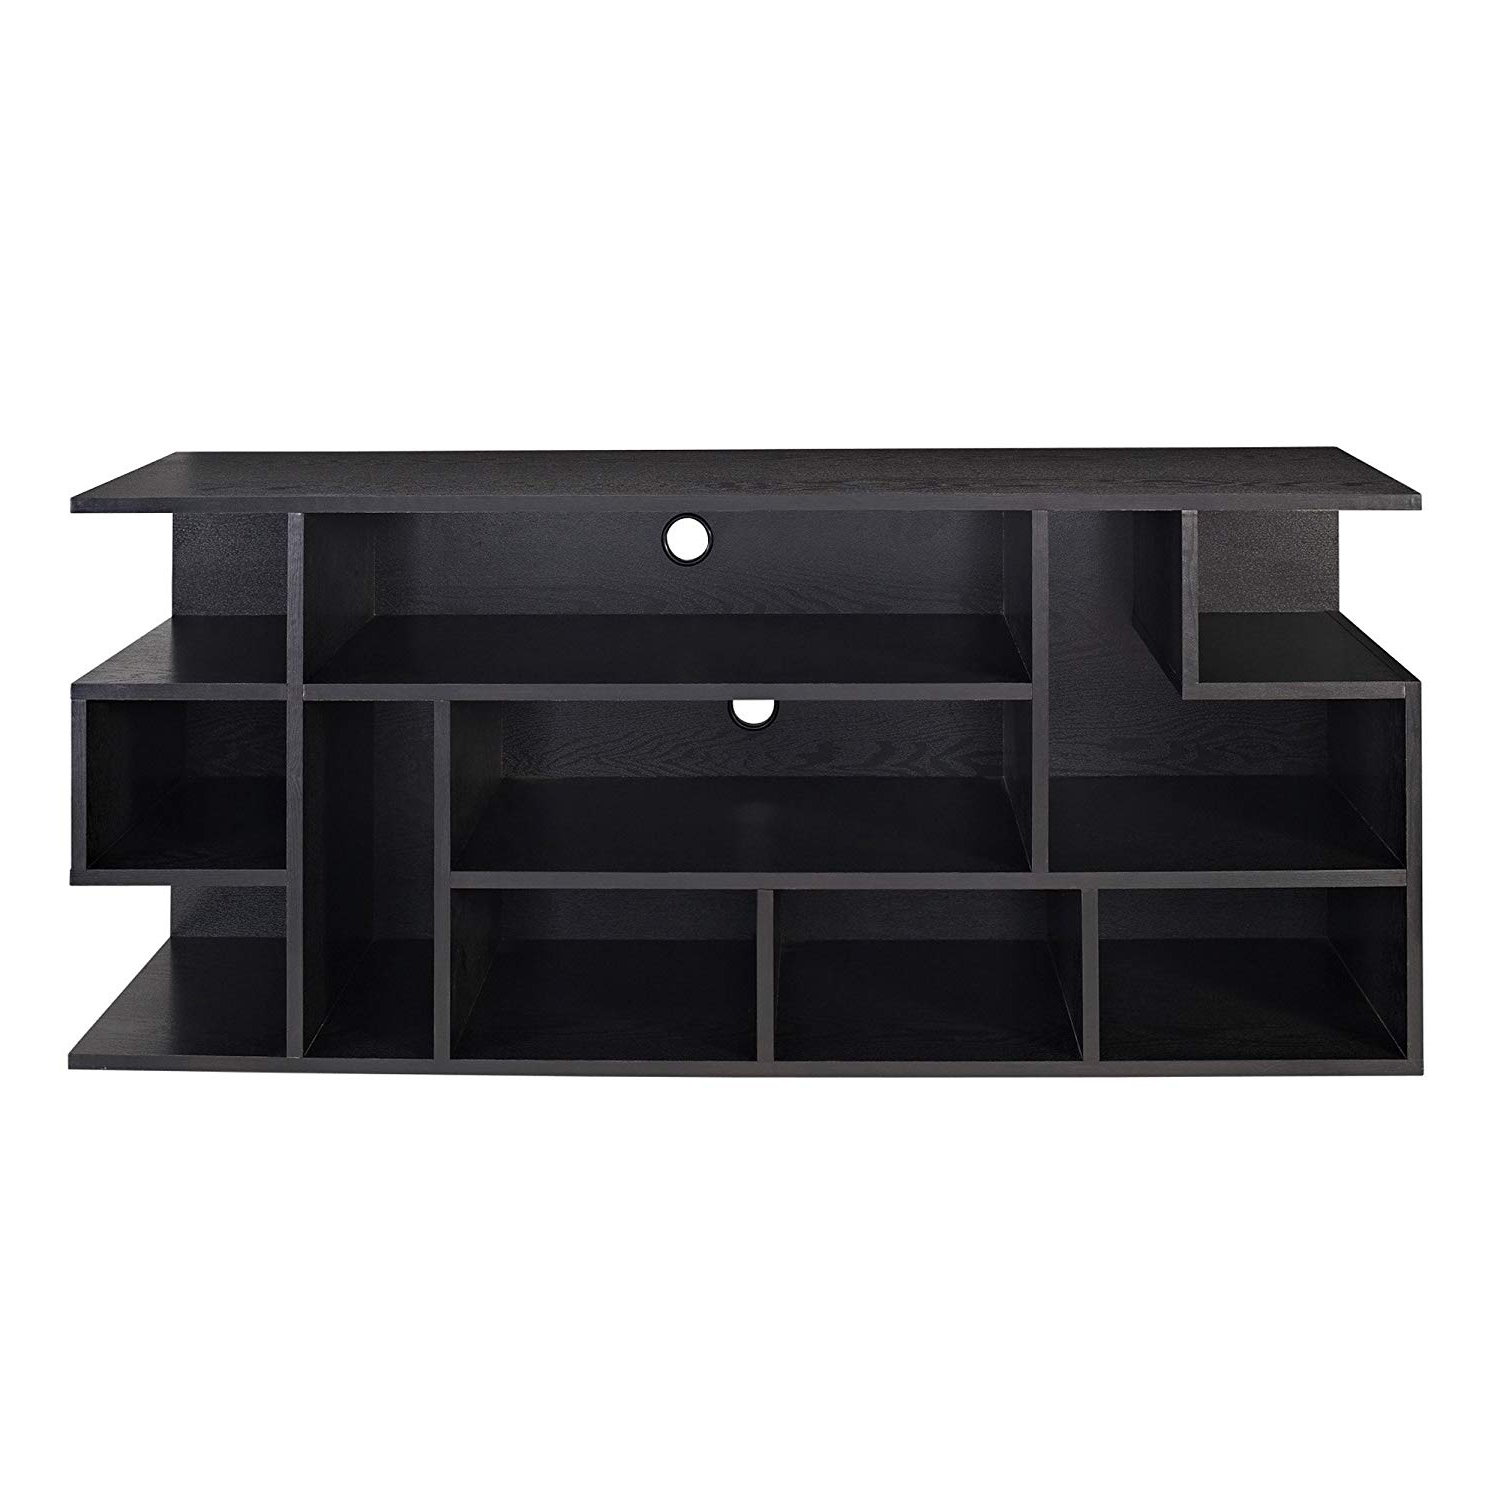 "Famous Abbot 60 Inch Tv Stands With Regard To Amazon: We Furniture 60"" Black Wood Tv Stand Console: Kitchen (View 8 of 20)"